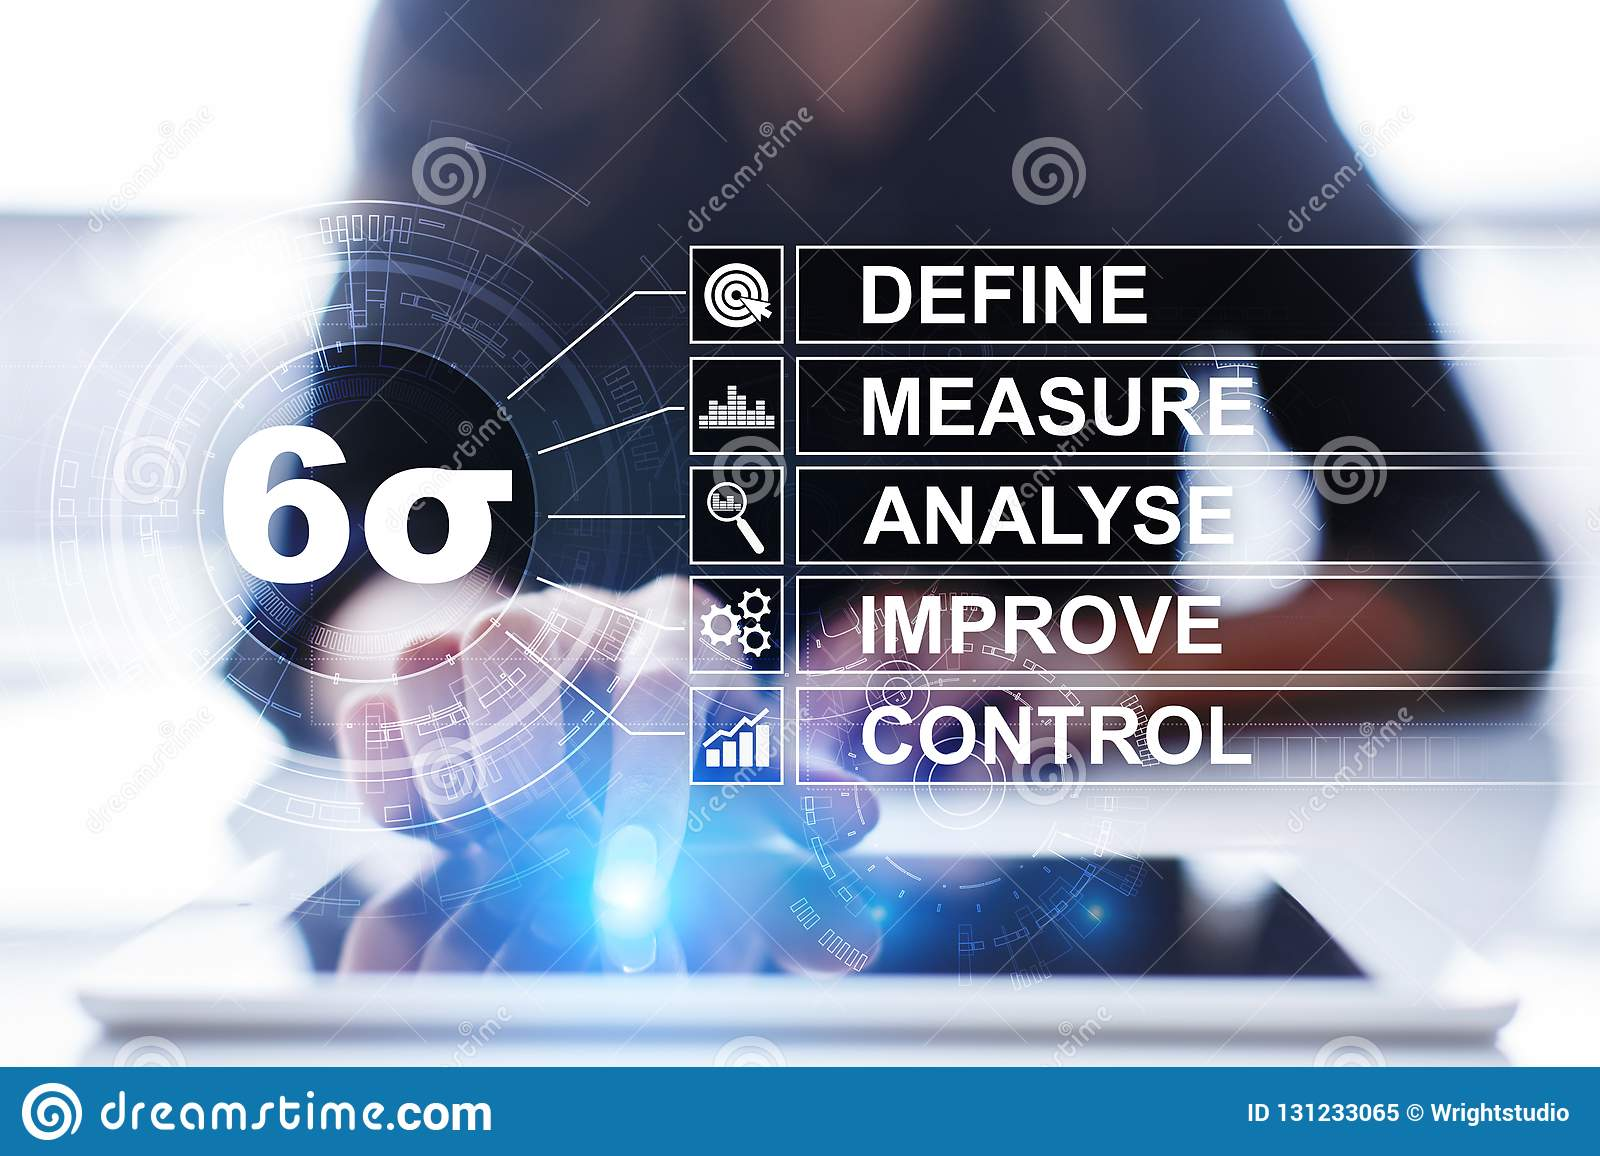 Six sigma - set of techniques and tools for process improvement.